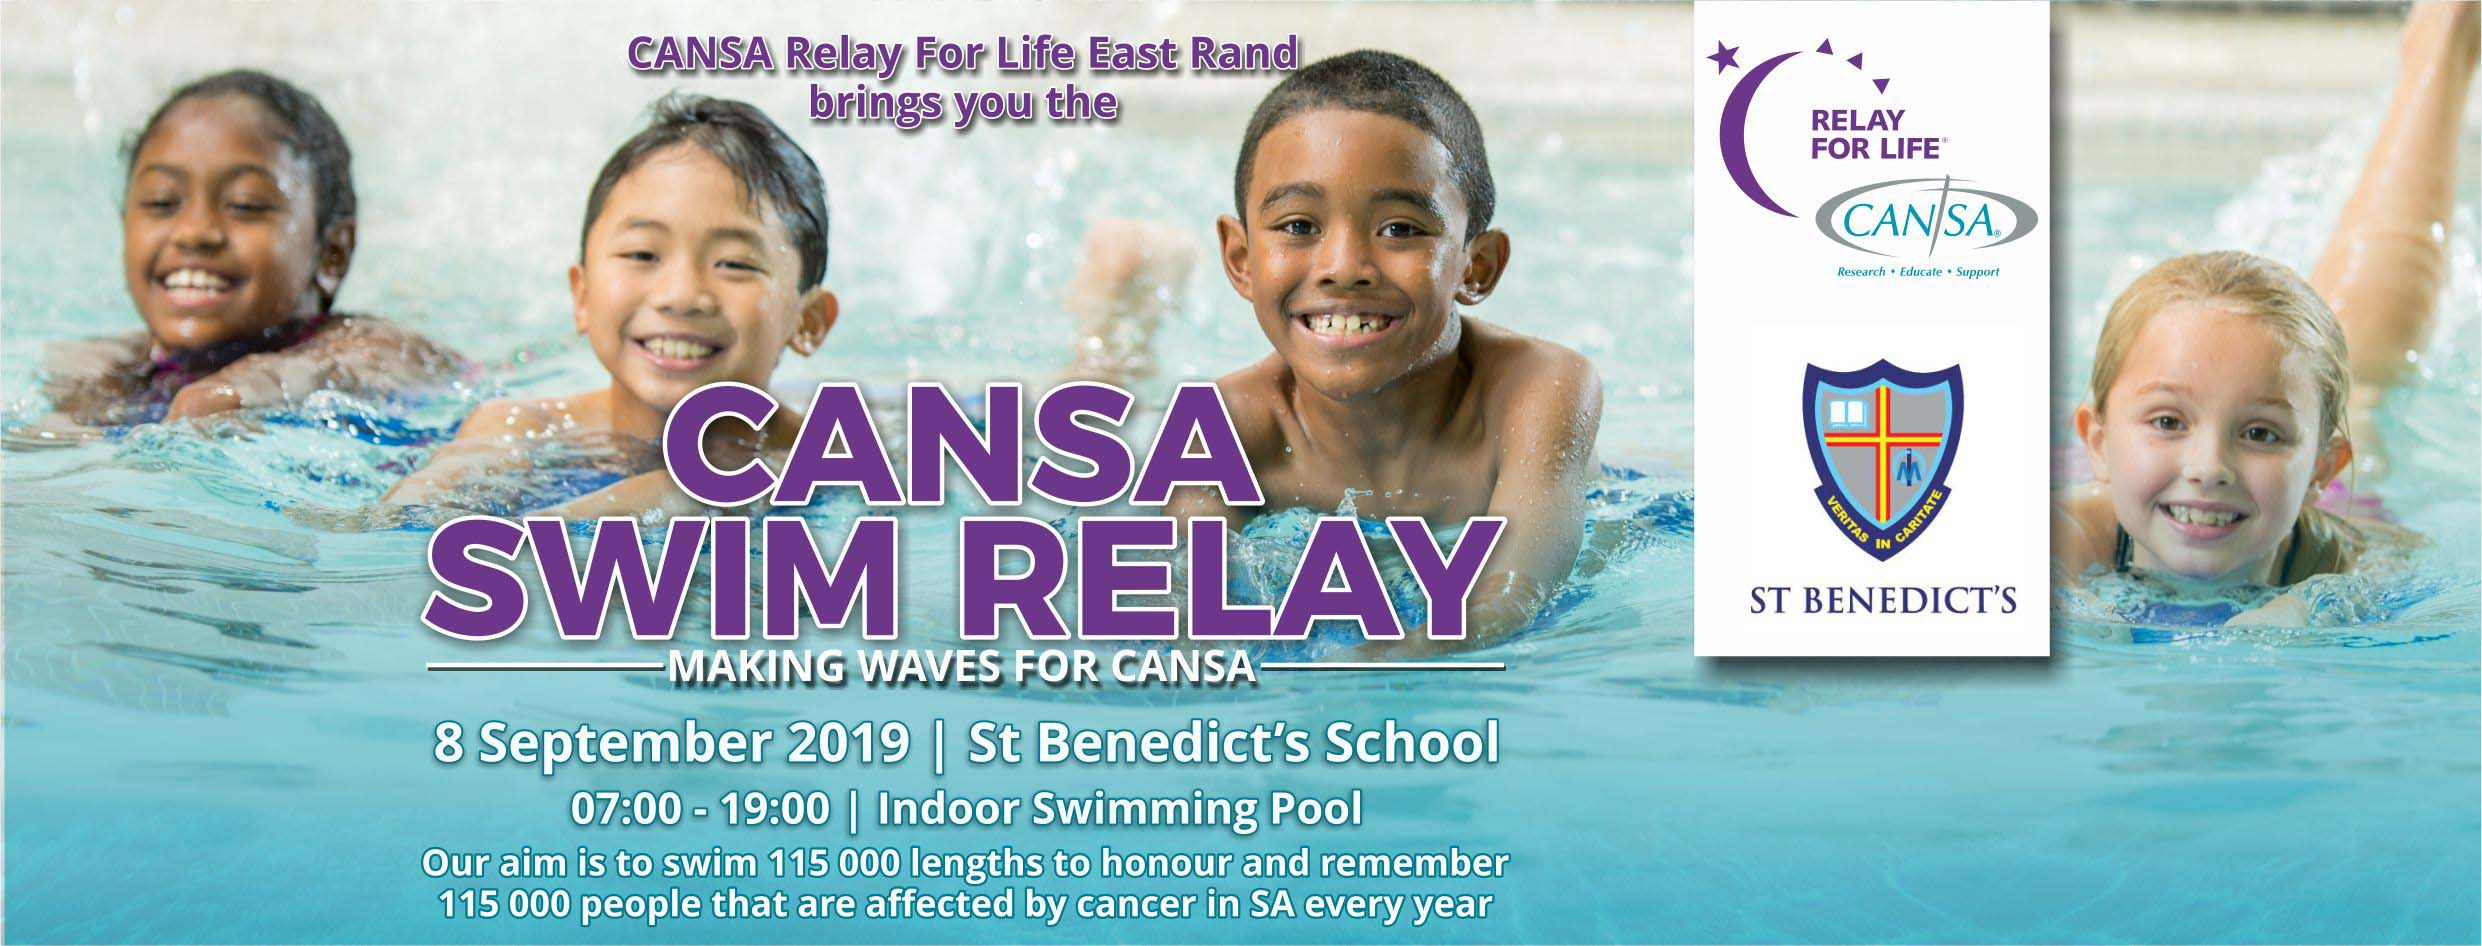 Making Waves for CANSA